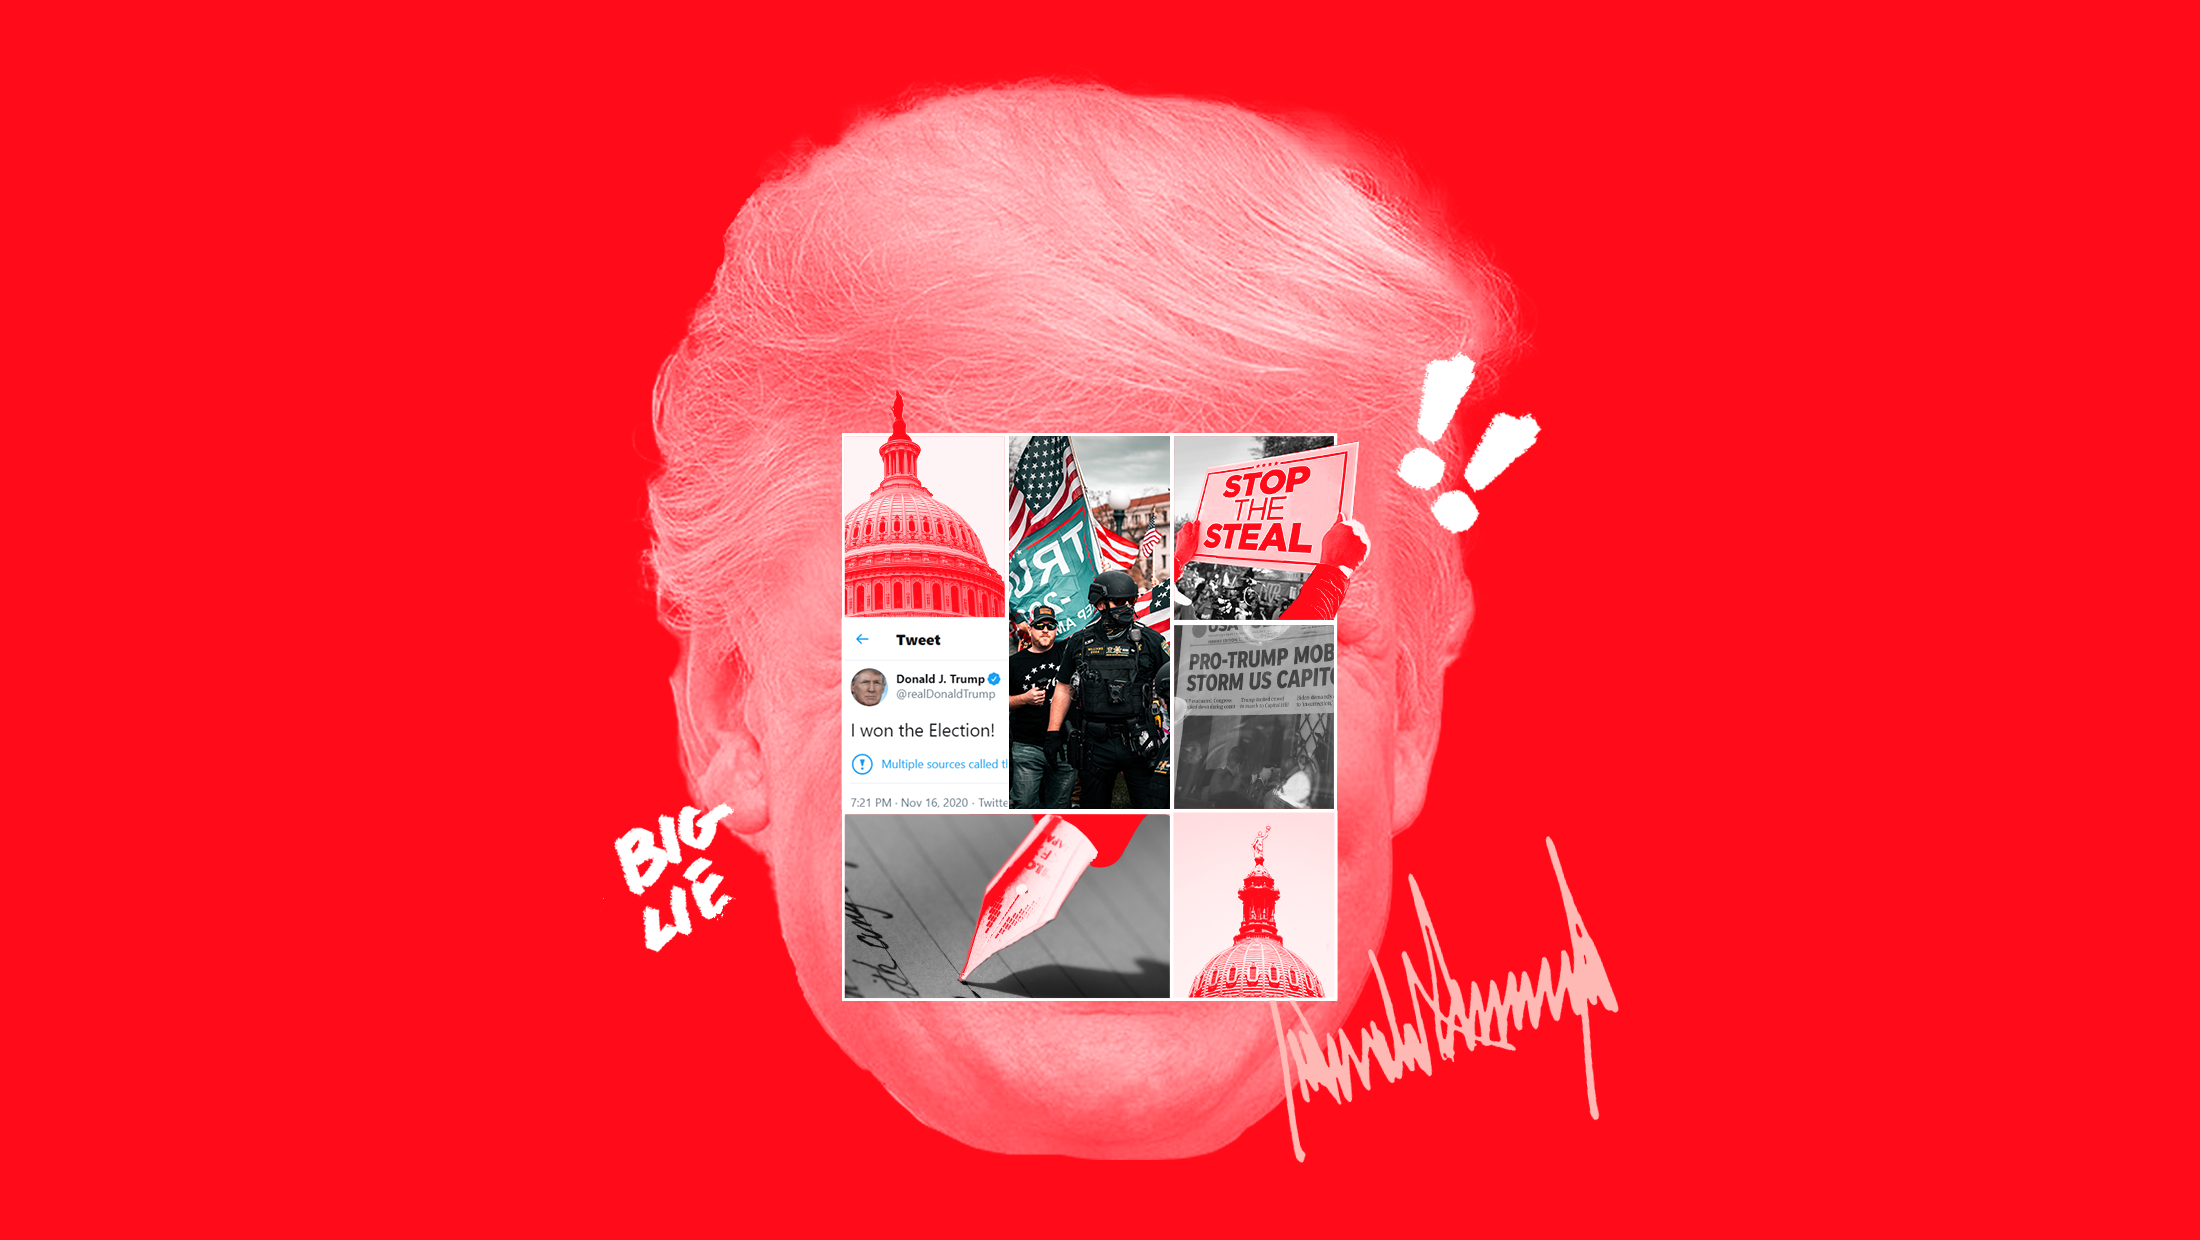 """A collage mounted on top of former President Donald Trump's face featuring the U.S. Capitol, a """"STOP THE STEAL"""" sign, a pen signing a bill into law, a Tweet that says """"I WON THE ELECTION!"""", and scenes from the January 6th insurrection. accompanied by accent marks that include exclamation points, Trump's signature and text that says """"BIG LIE"""""""